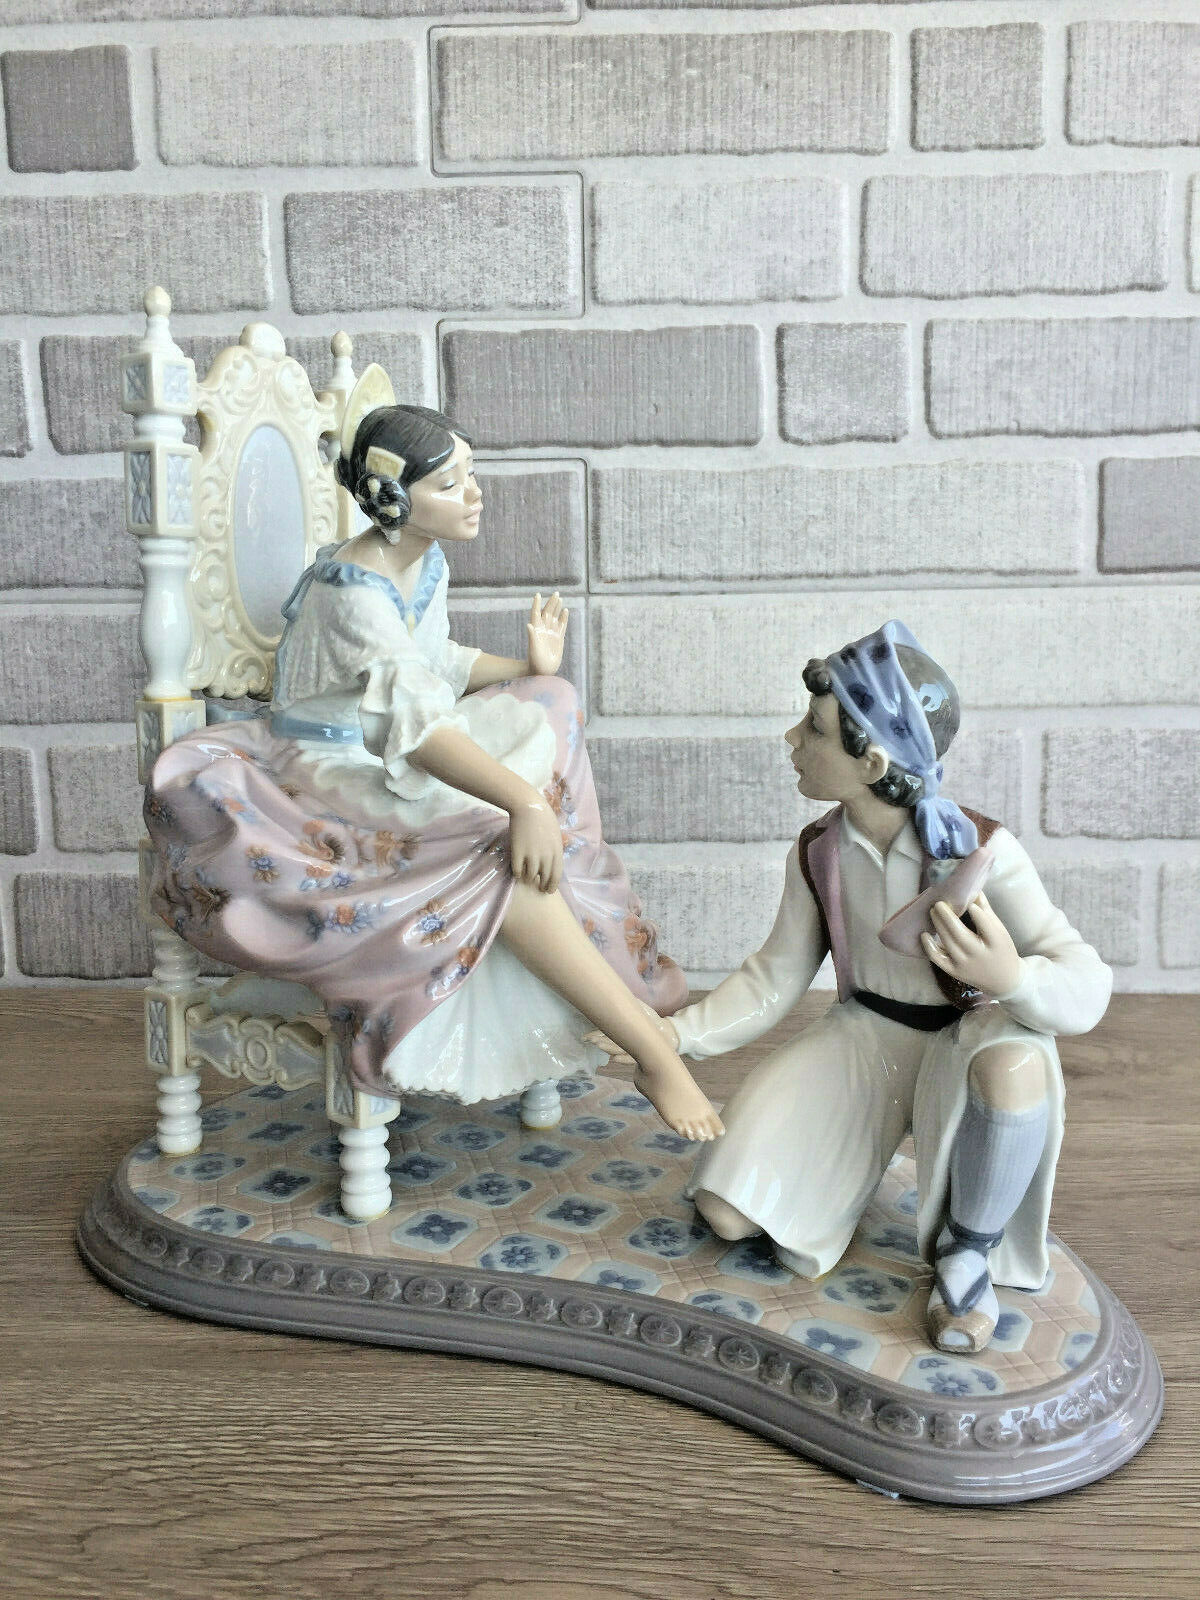 Primary image for Lladro 6086 Allow Me Glased Porcelain Figurine Retired Perfect Condition